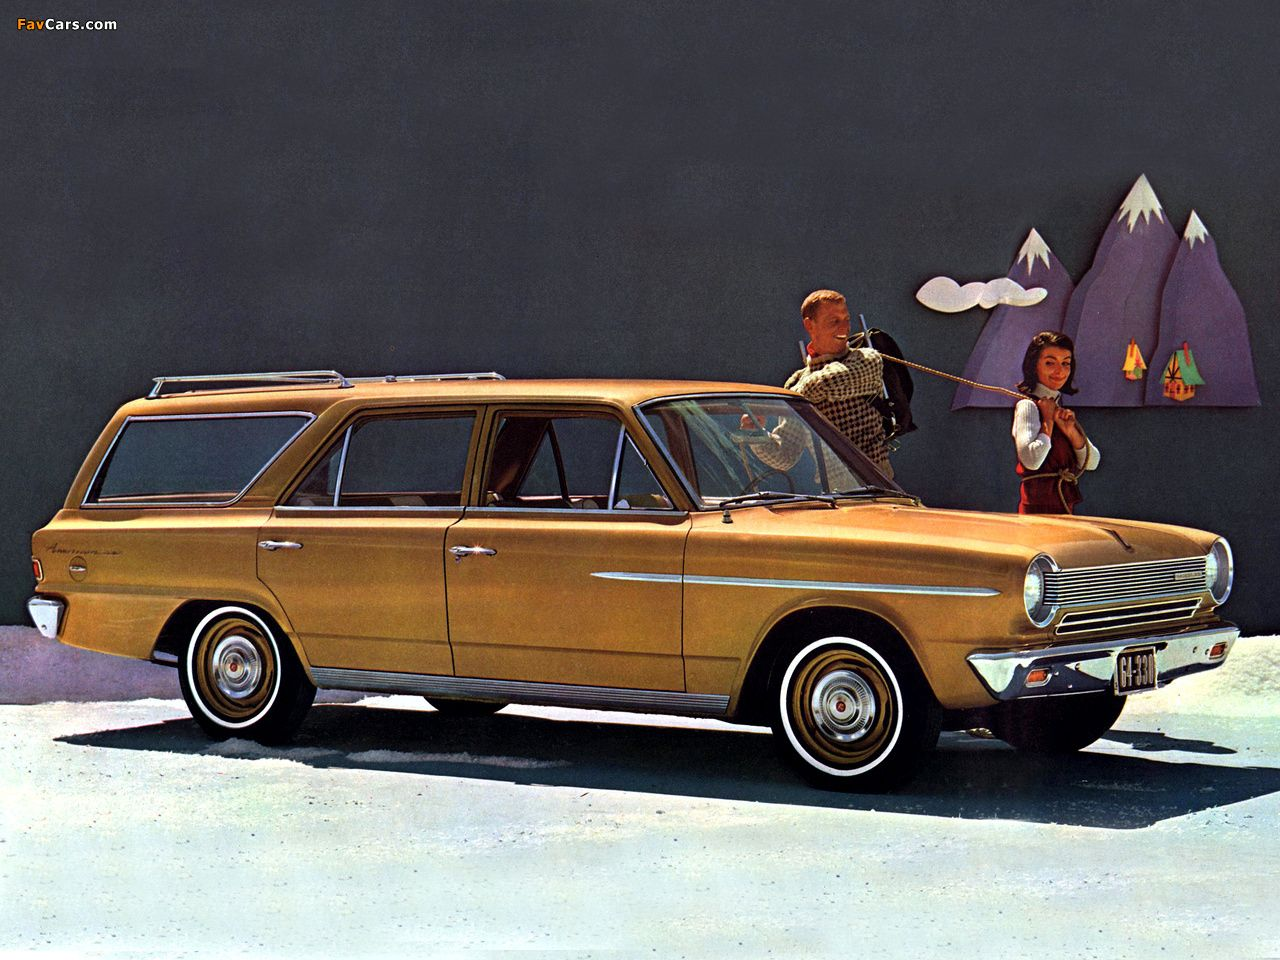 1964 rambler american 330 wagon meet me at the station. Black Bedroom Furniture Sets. Home Design Ideas